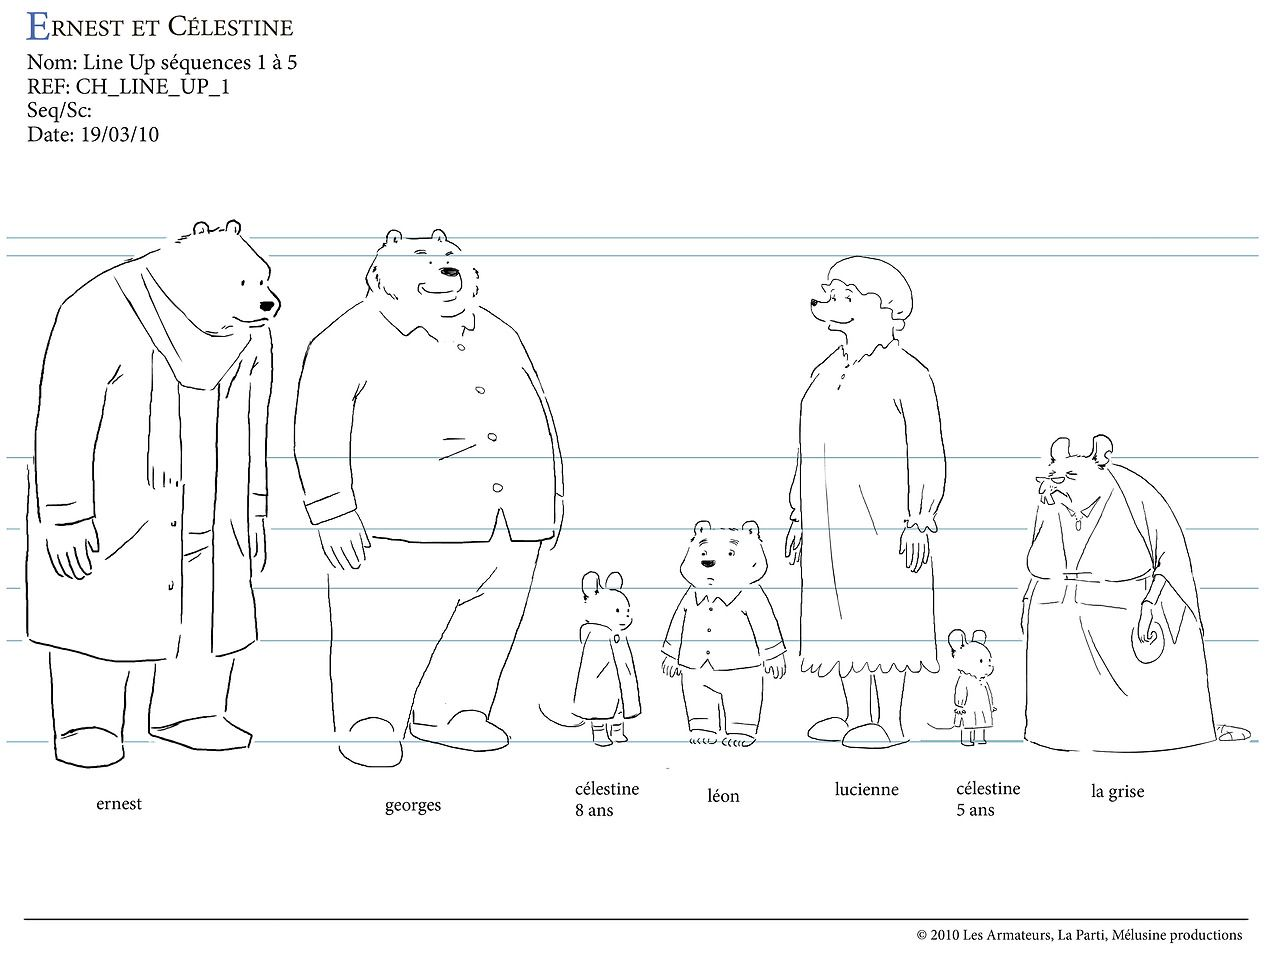 Ernest And Celestine Ernest And Celestine Character Model Sheet Character Design